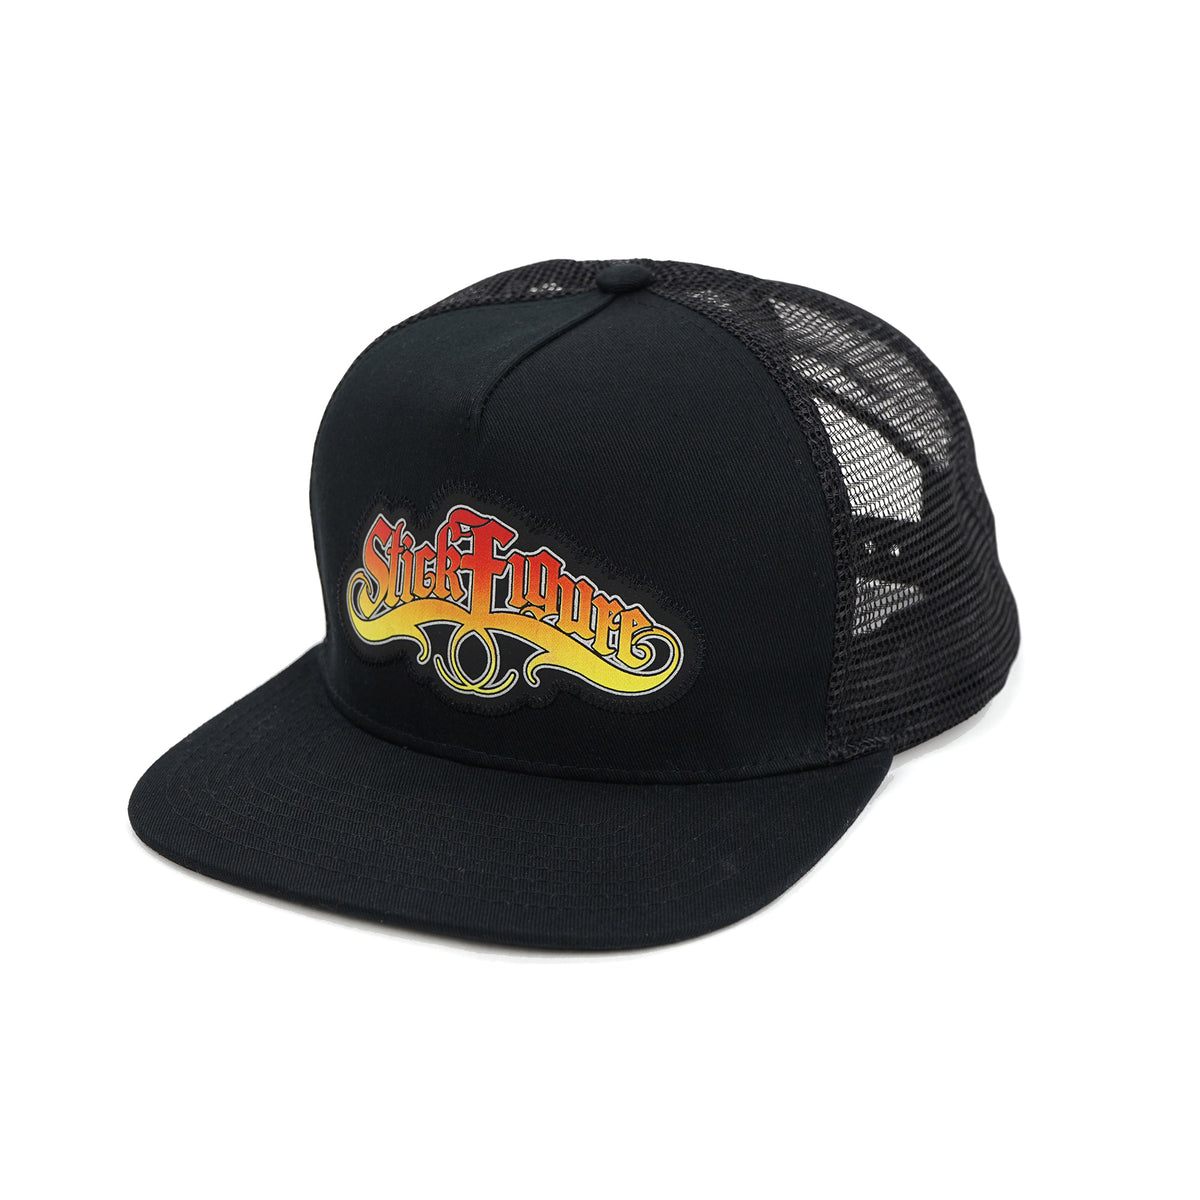 Stick Figure Snapback Black Big Image - 1